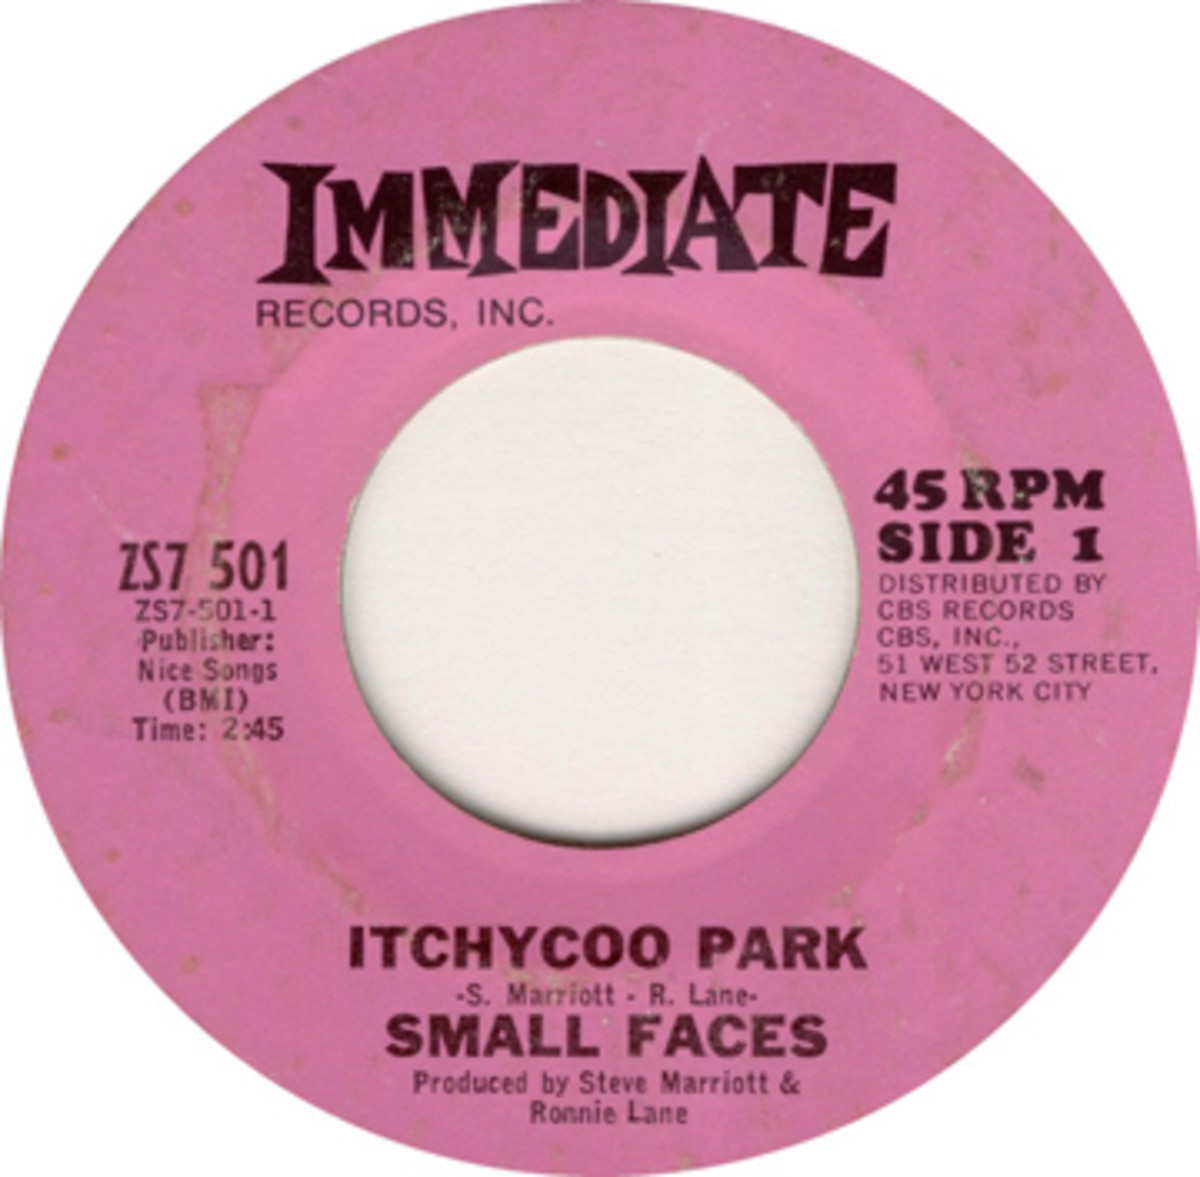 SmallFaces_ItchycooPark45_ZS7501